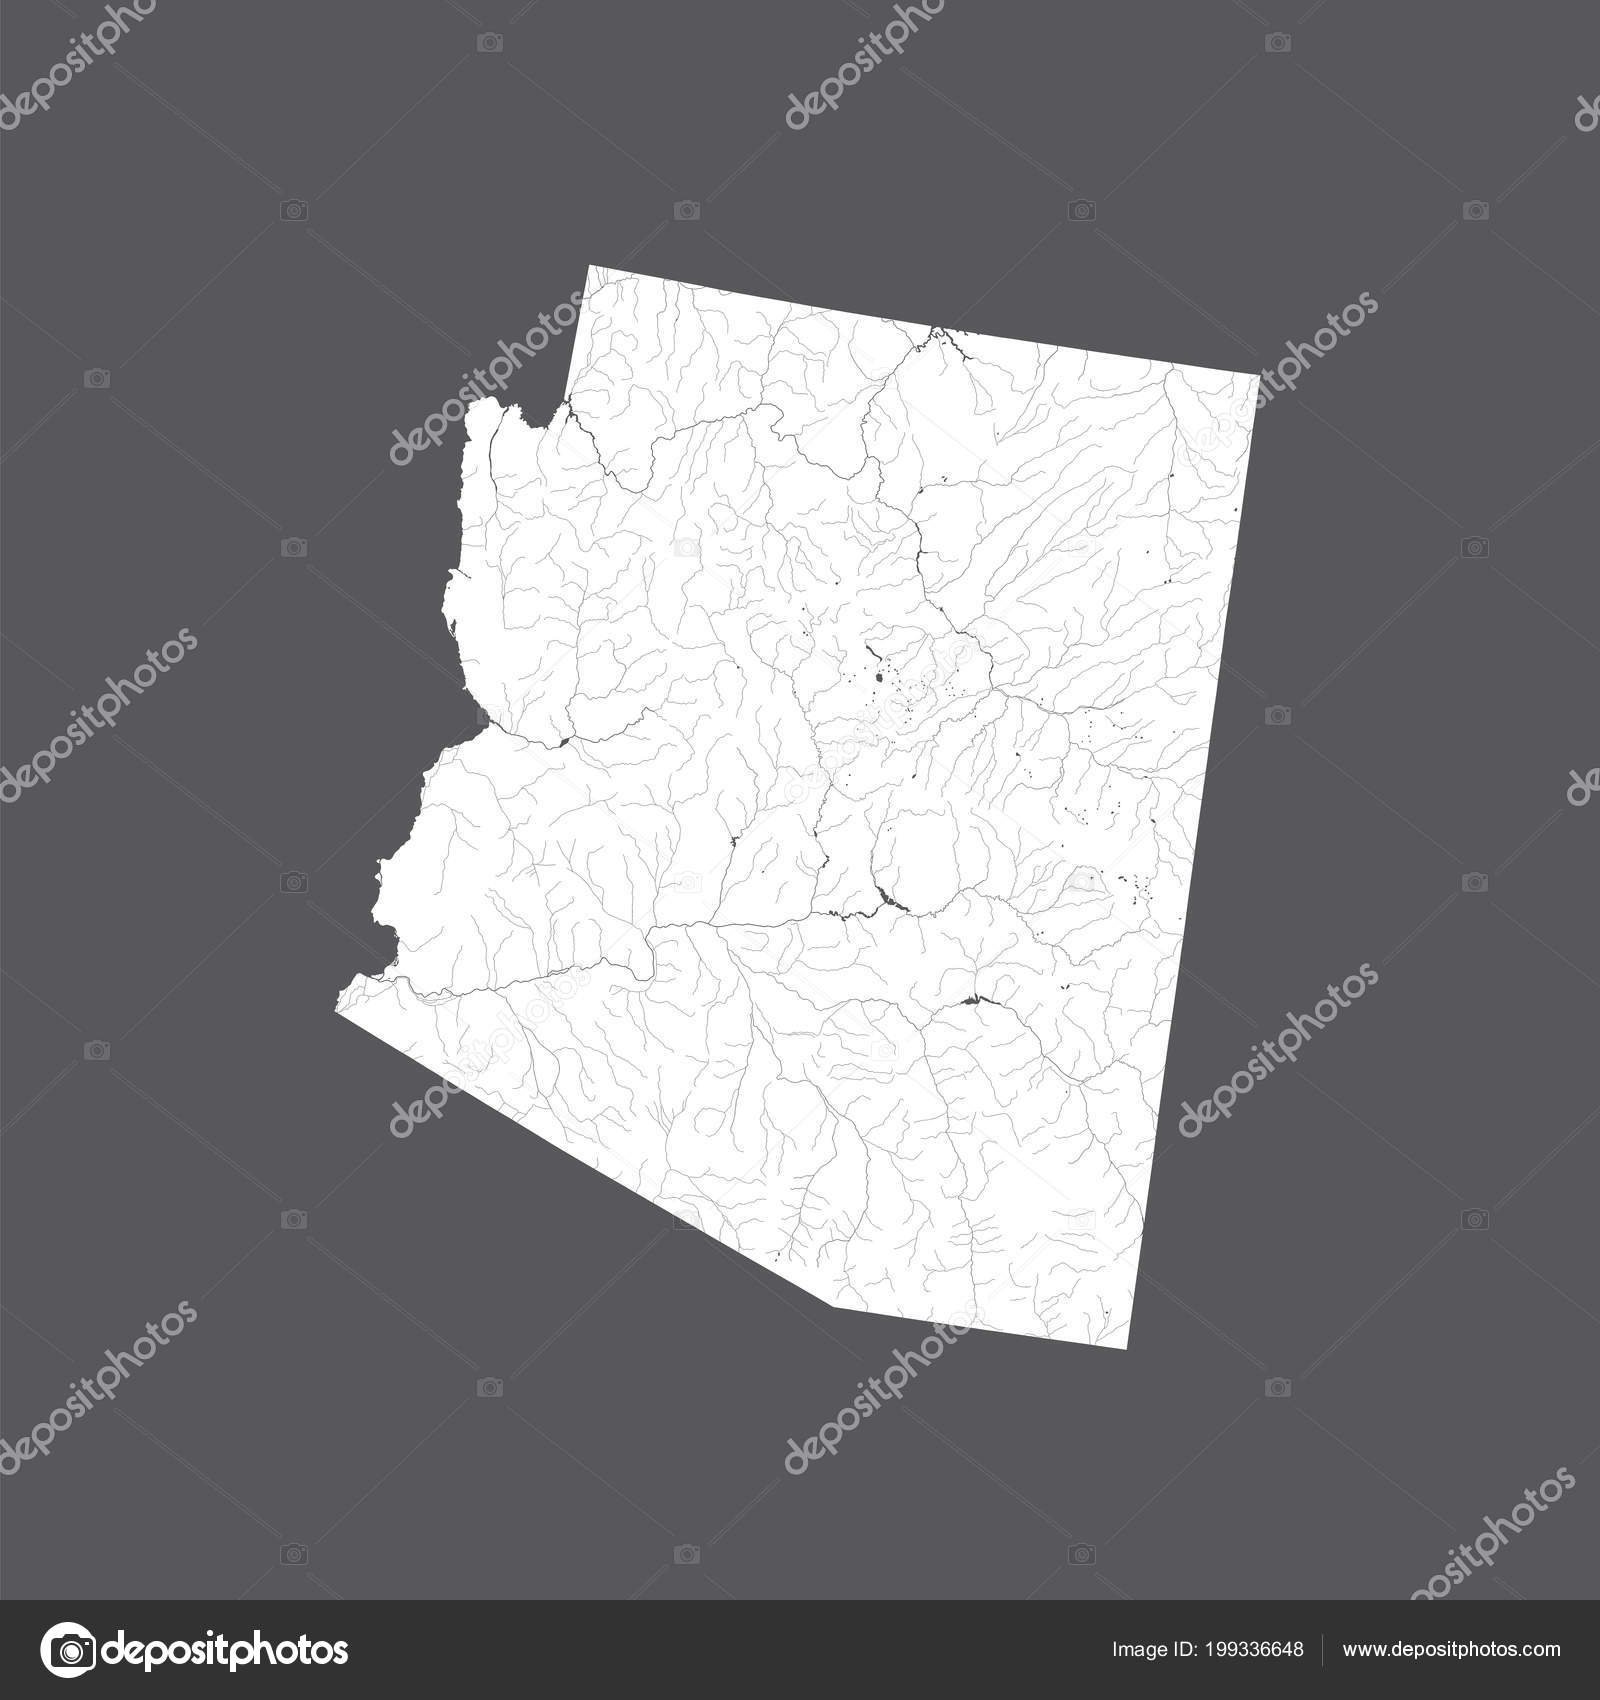 Map Of Arizona Please.States Map Arizona Hand Made Rivers Lakes Shown Please Look Stock